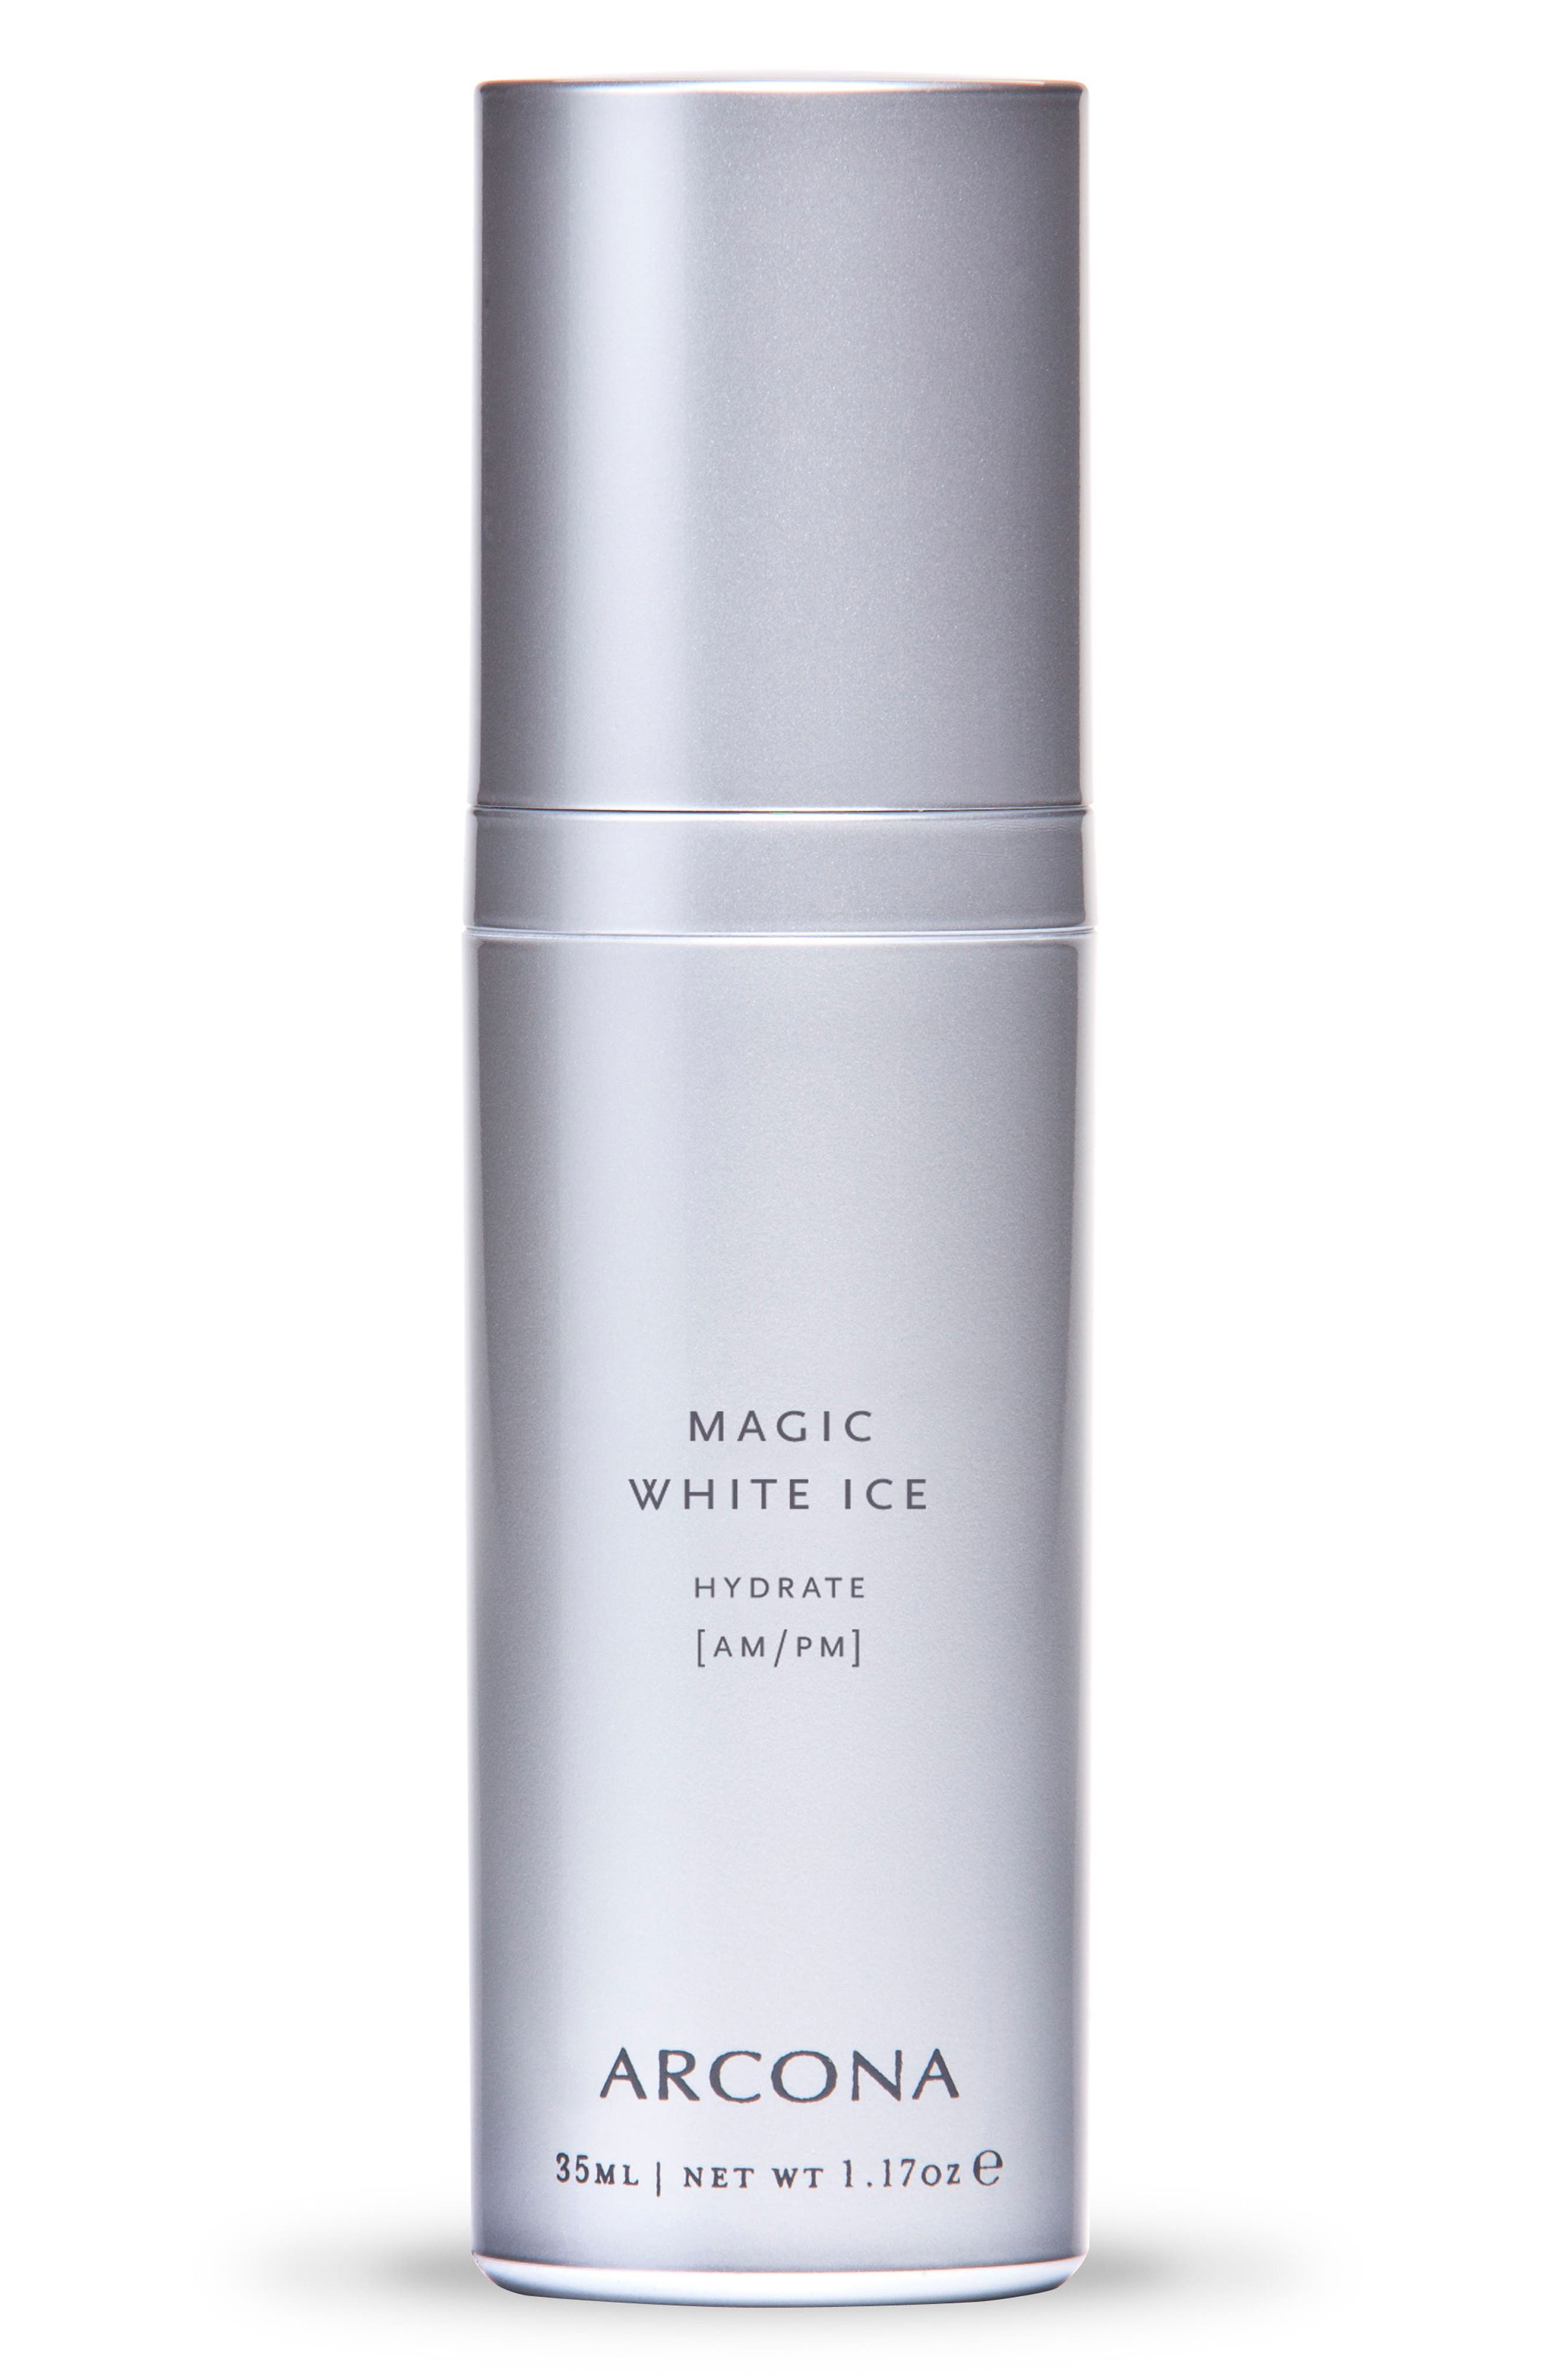 ARCONA Magic White Ice Daily Hydrating Gel